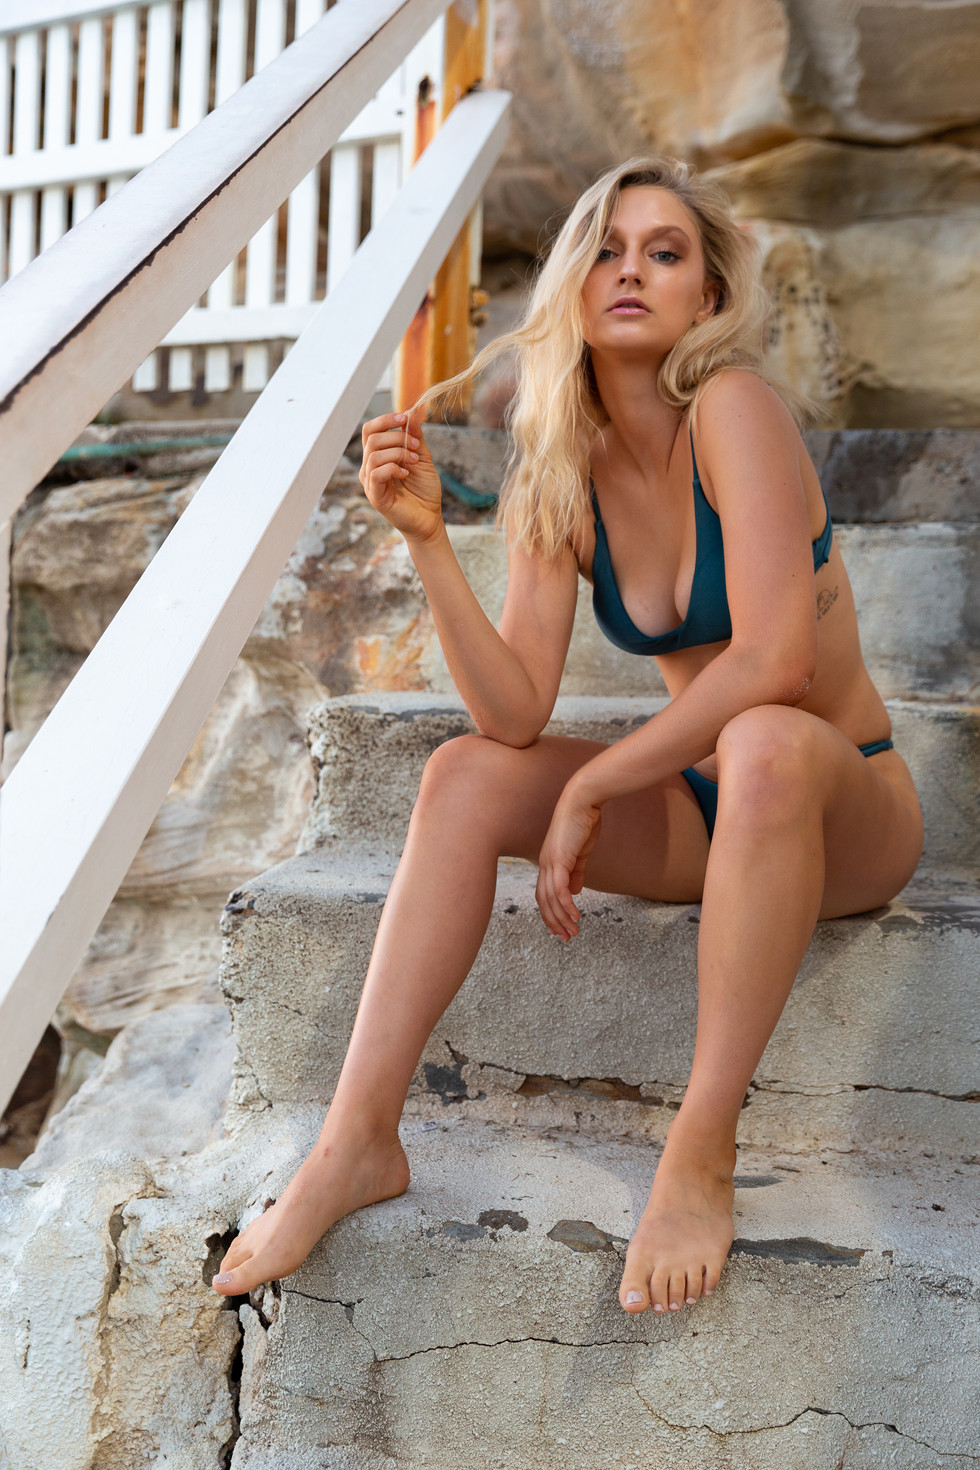 Brooke_by_CoogeePhotography-89589.jpg